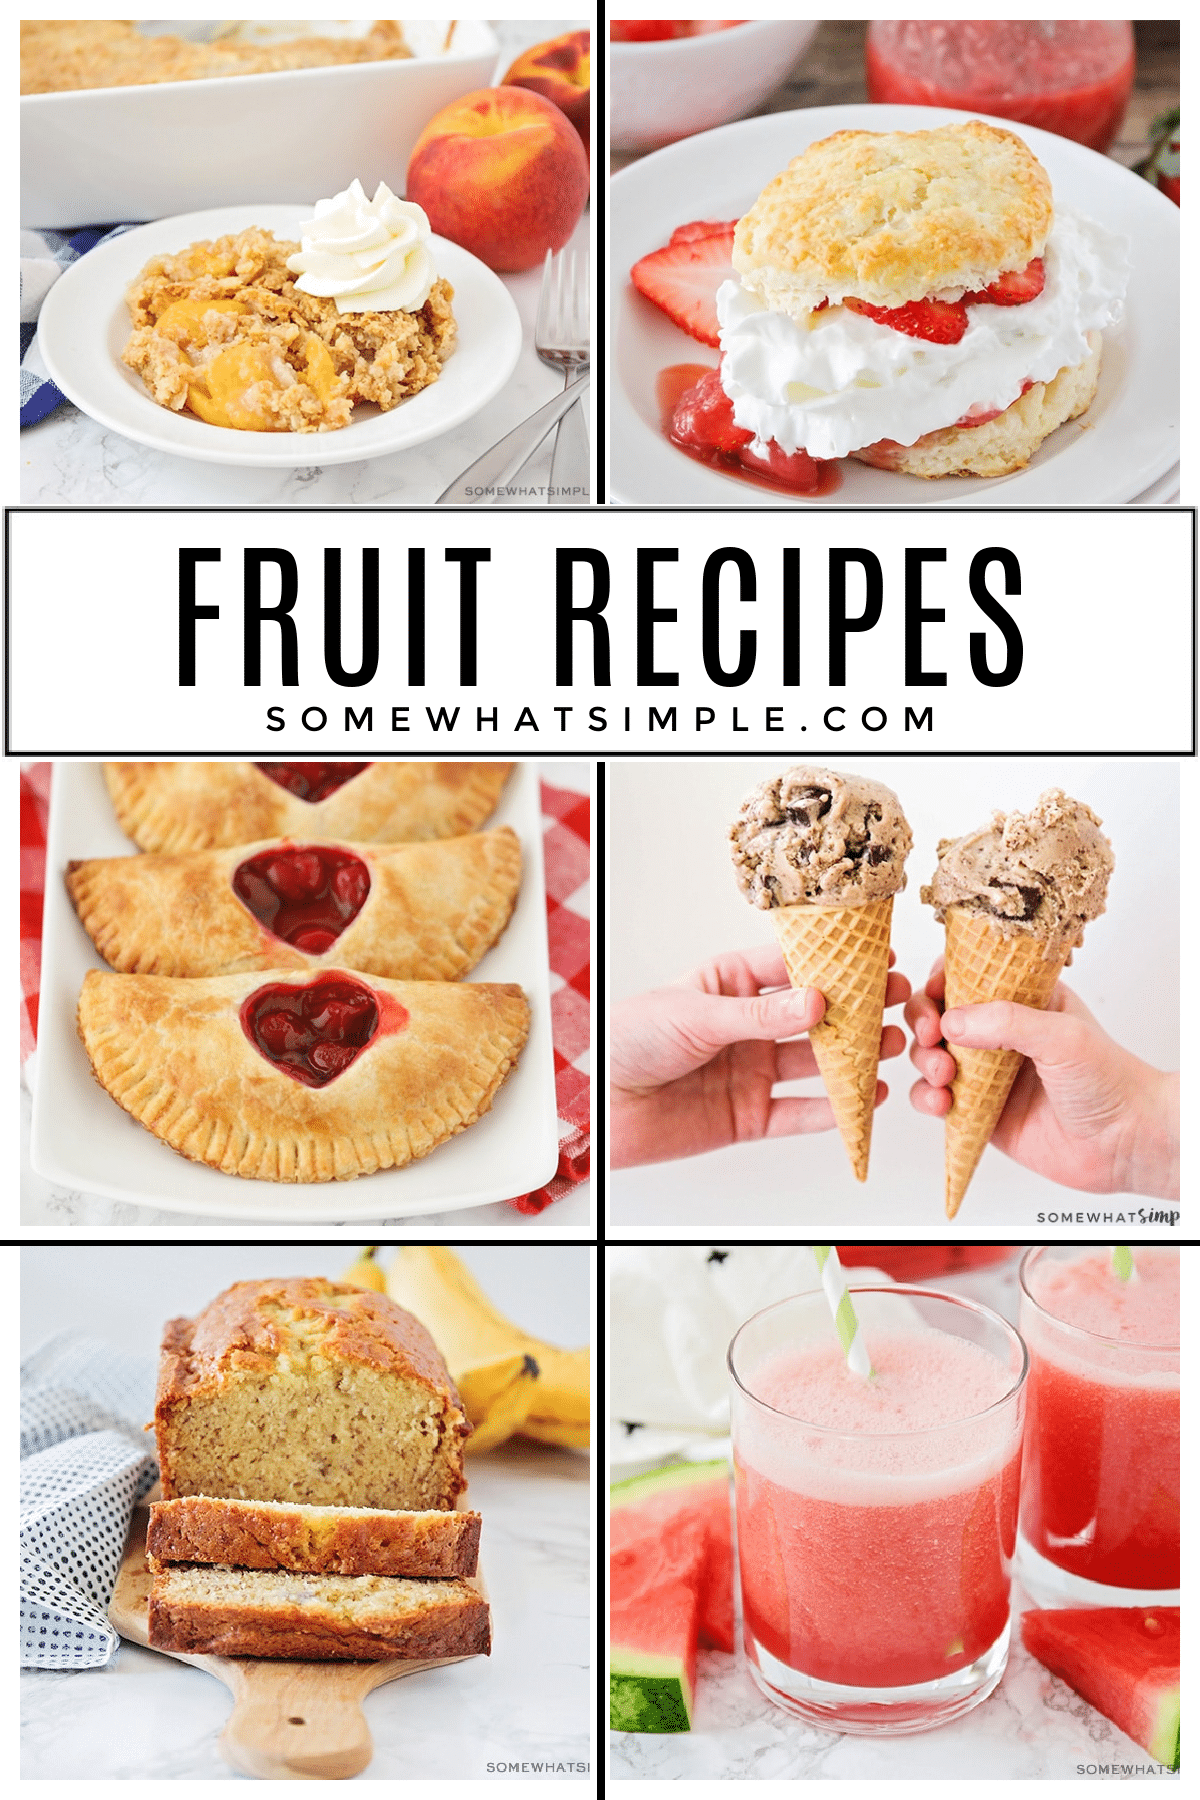 Fruit salads, fruit smoothies, fruit baked goods, and MORE! Here is a list of over 100 favorite fruit recipes that will use up your ripe fruits before they go bad! via @somewhatsimple